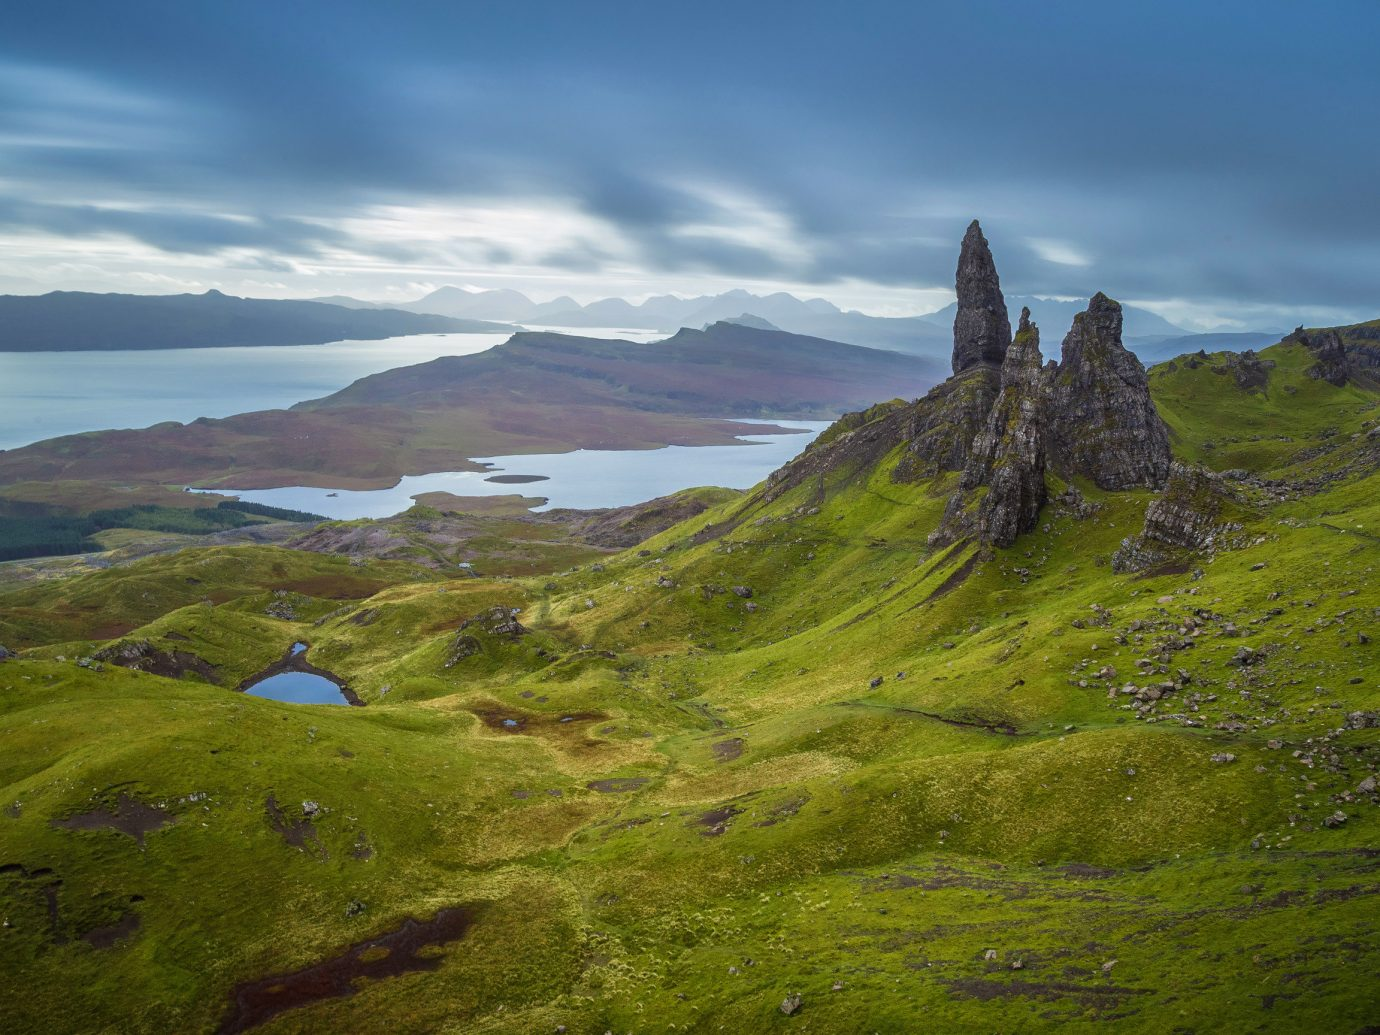 Travel Tips sky grass outdoor mountain highland mountainous landforms Nature hill geographical feature landform mountain range wilderness green hillside loch fell cloud Lake alps landscape plateau ridge mountain pass meadow terrain fjord grassy lush valley cliff reflection overlooking land